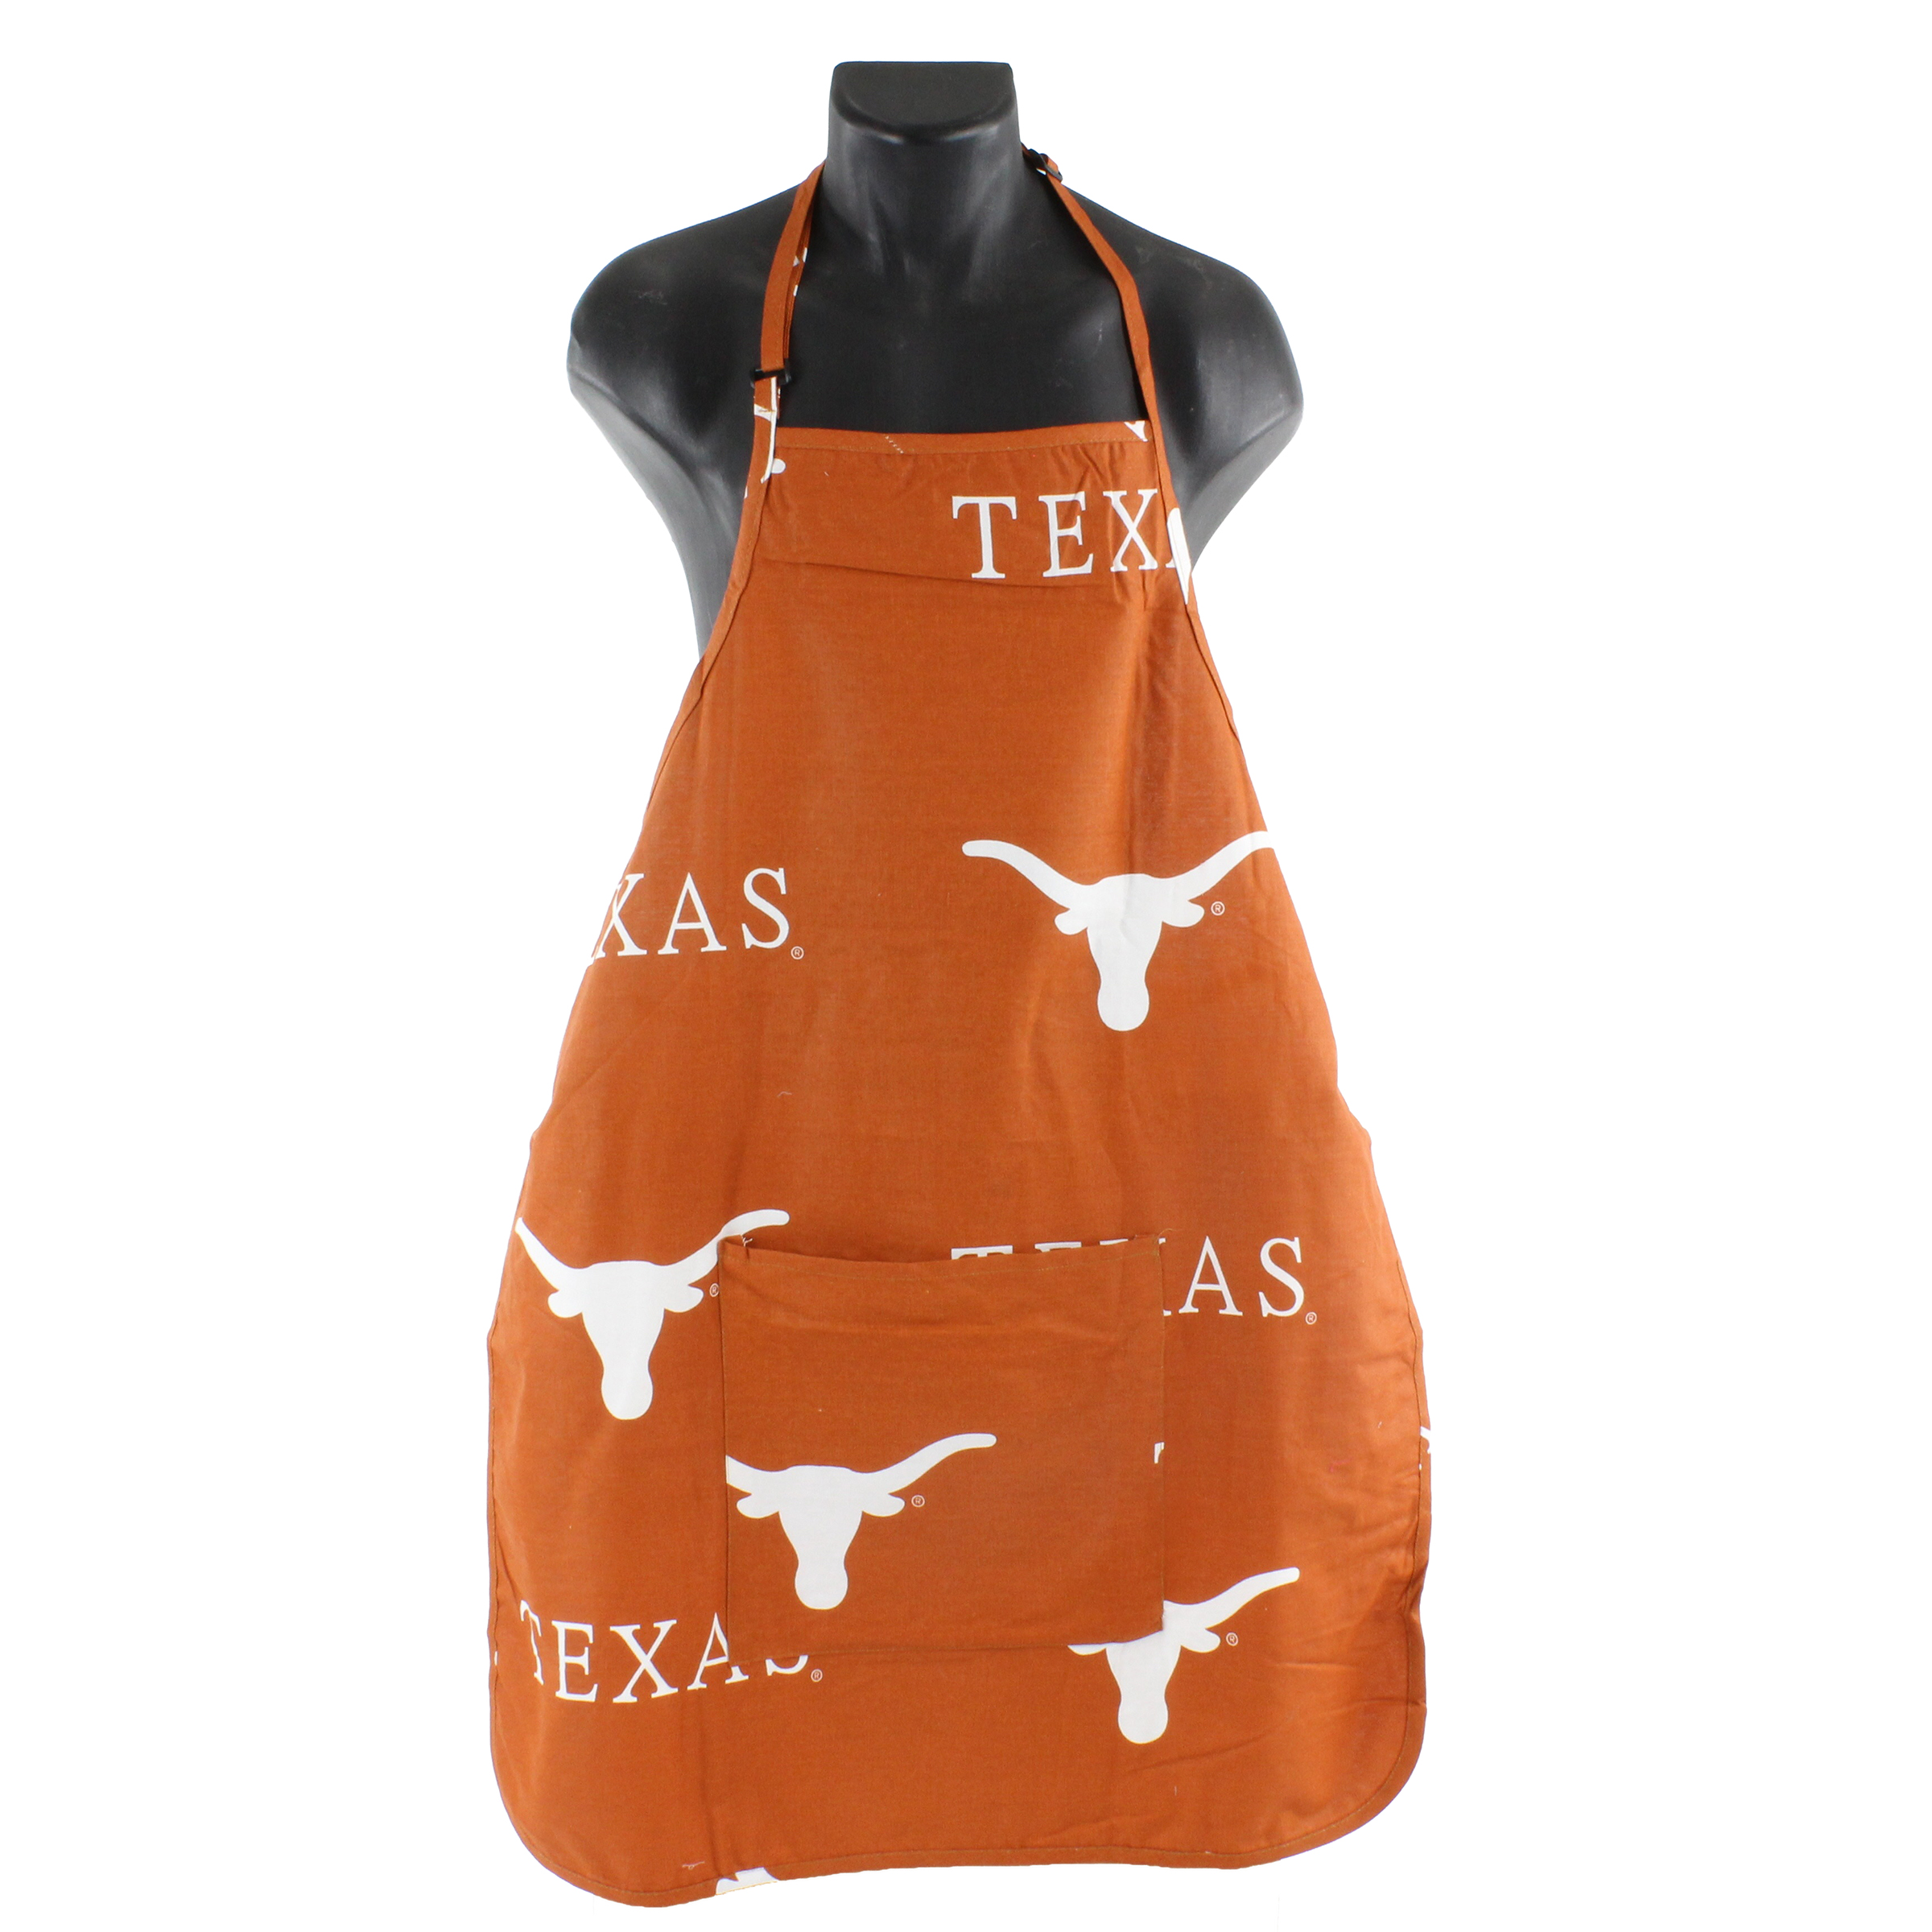 "Texas Longhorns Tailgating or Grilling Apron With 9"" Pocket, Fully Adjustable"